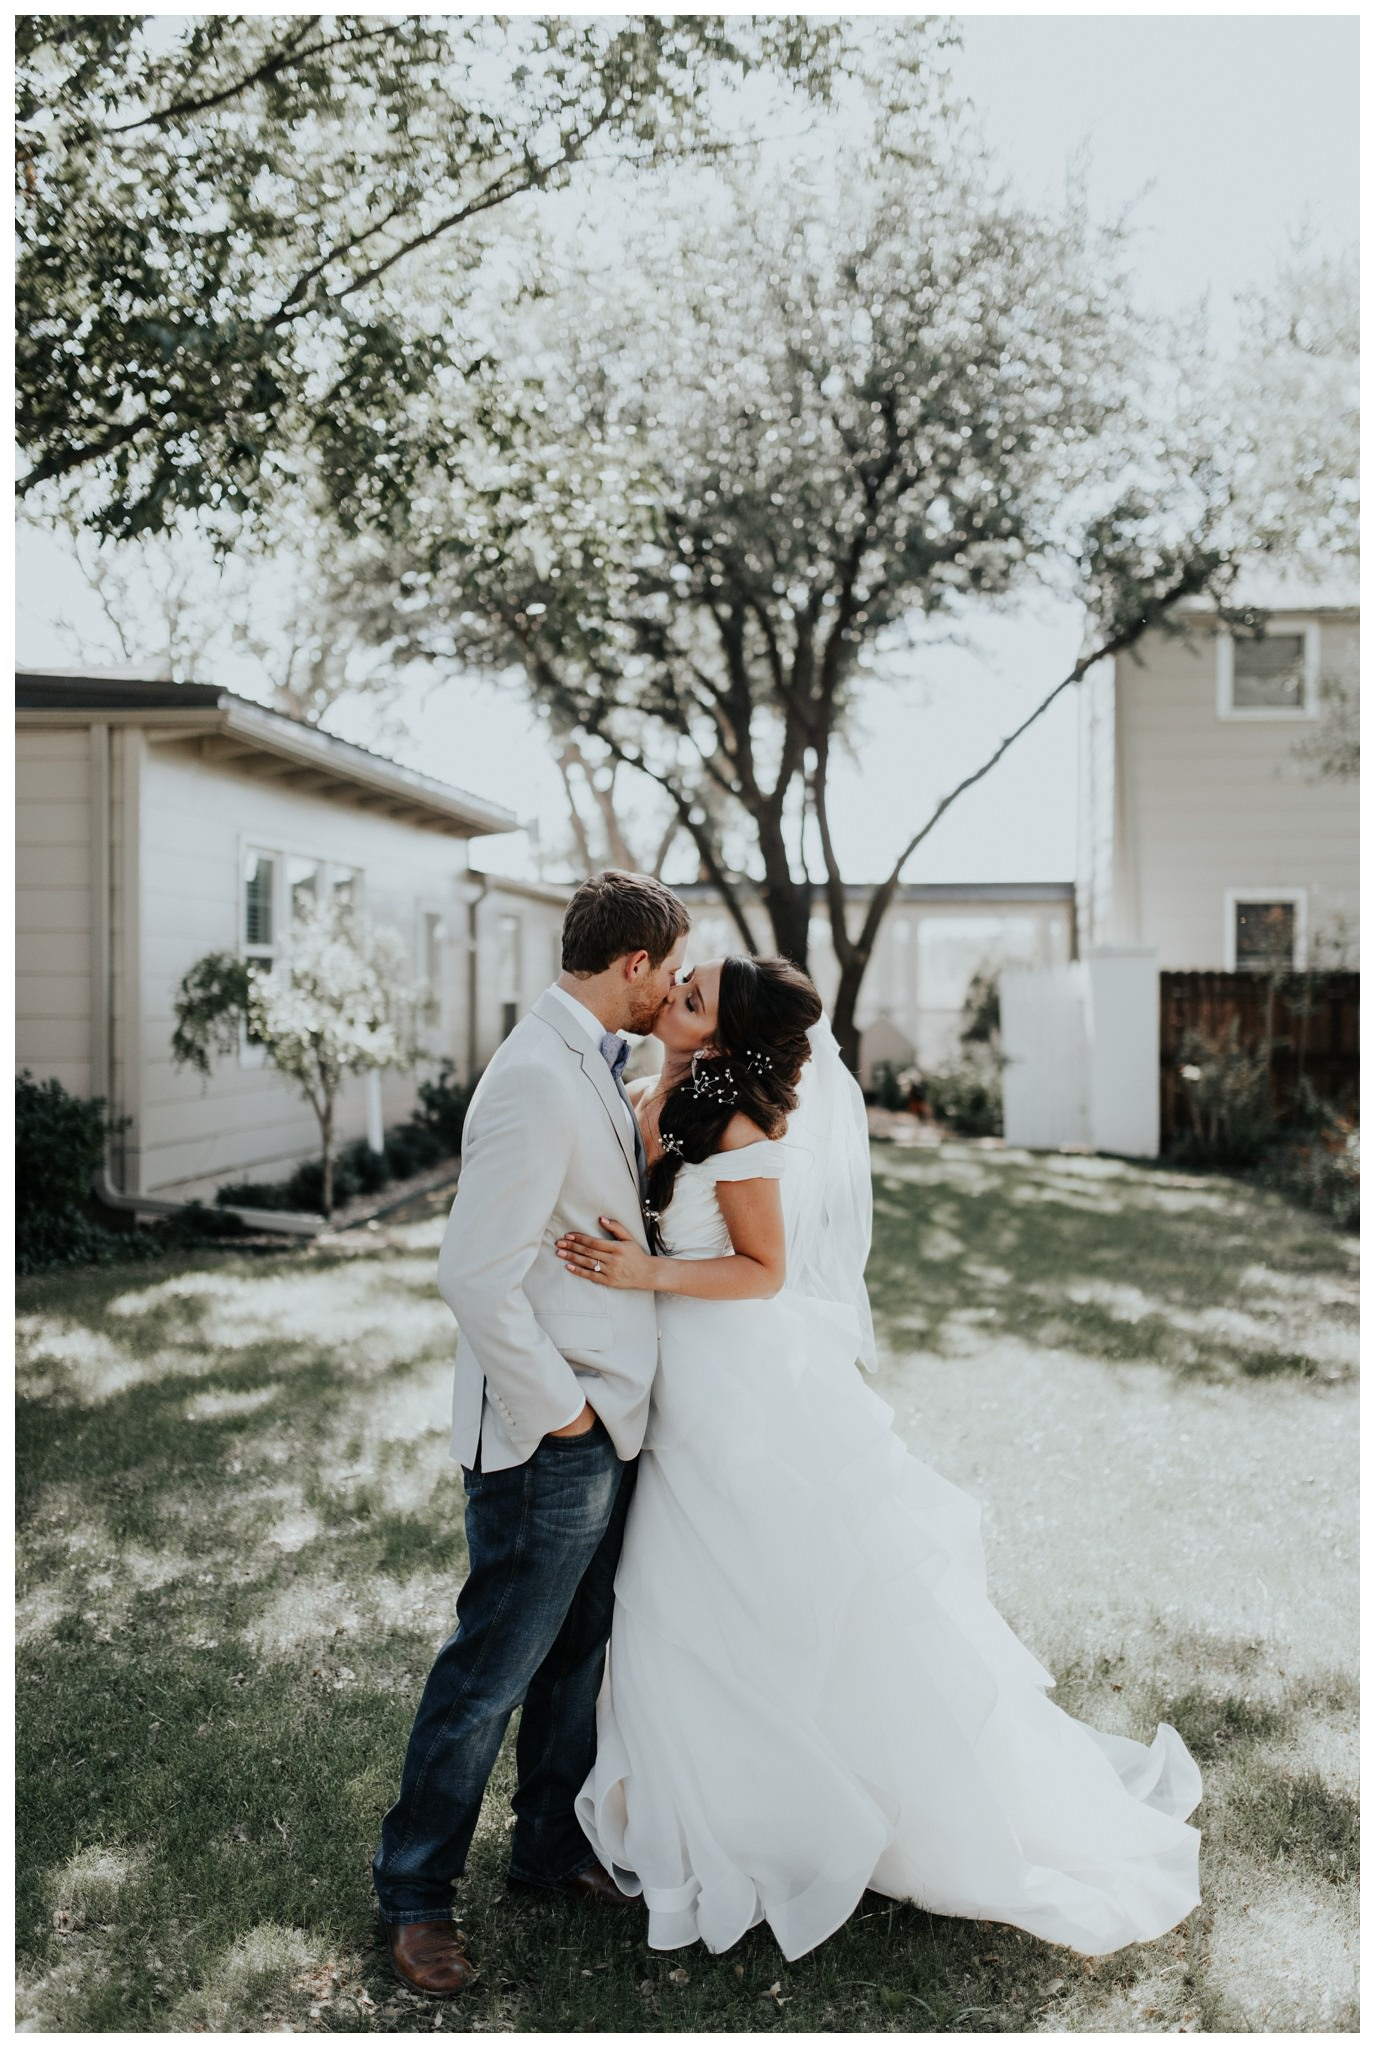 Whimsical Ranch West Texas Wedding - DIY Farm Wedding-7649-2.jpg